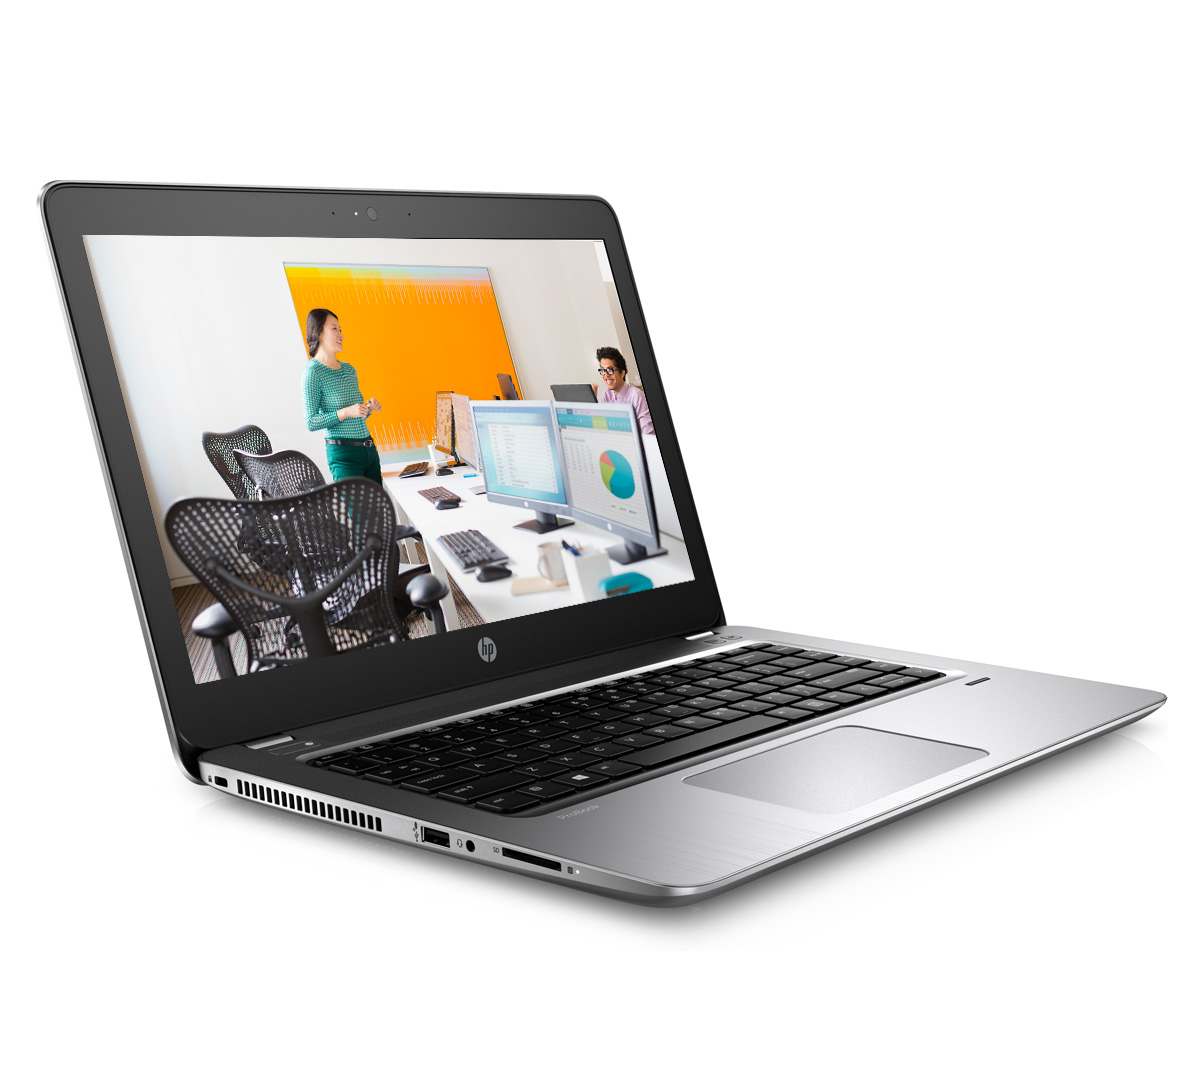 Choosing the best laptop online that satisfies your requirements as a user is very important. The best laptop brands including Dell Laptops, HP laptops, Lenovo laptops, Acer laptops, Apple MacBooks, Asus Laptops and more, always assure you of quality service and can be blindly relied upon.